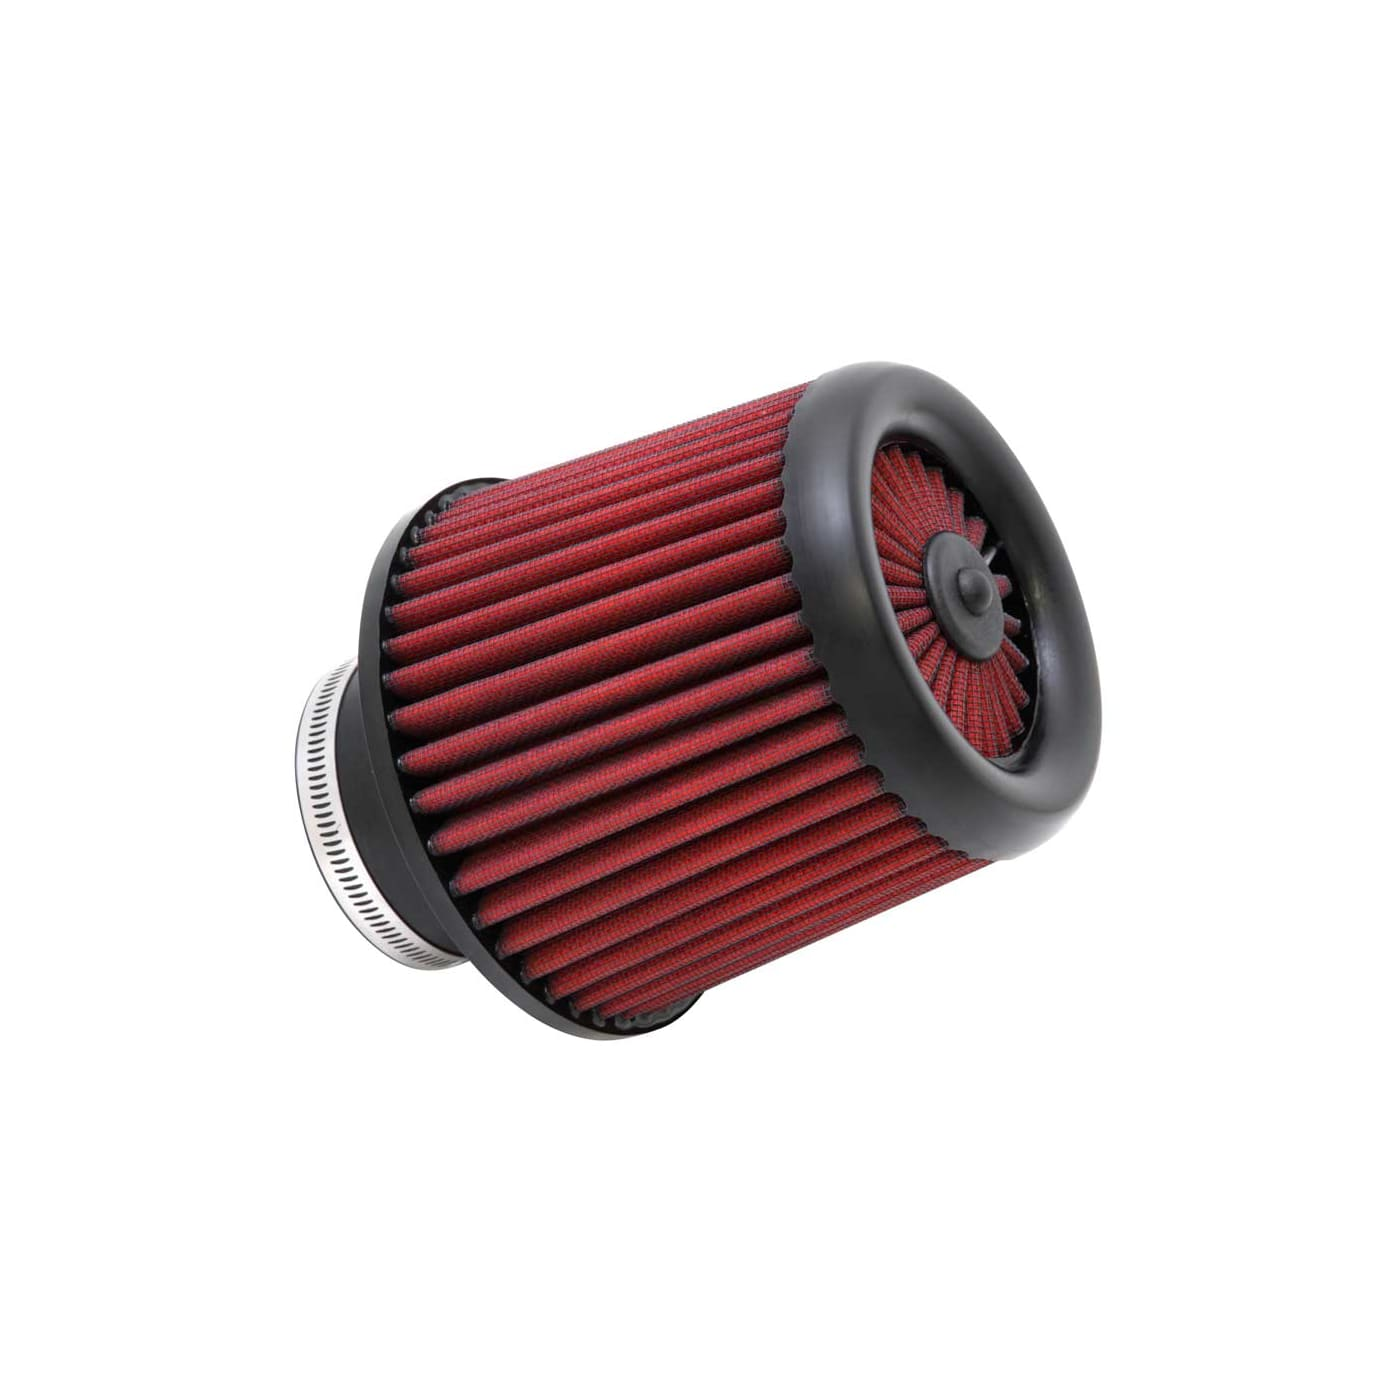 Height; 6 in 152 mm Flange ID; 5.563 in AEM 21-203D-XK Universal DryFlow Clamp-On Air Filter: Round Tapered; 3 in Base; 5 in 76 mm 141 mm 127 mm Top